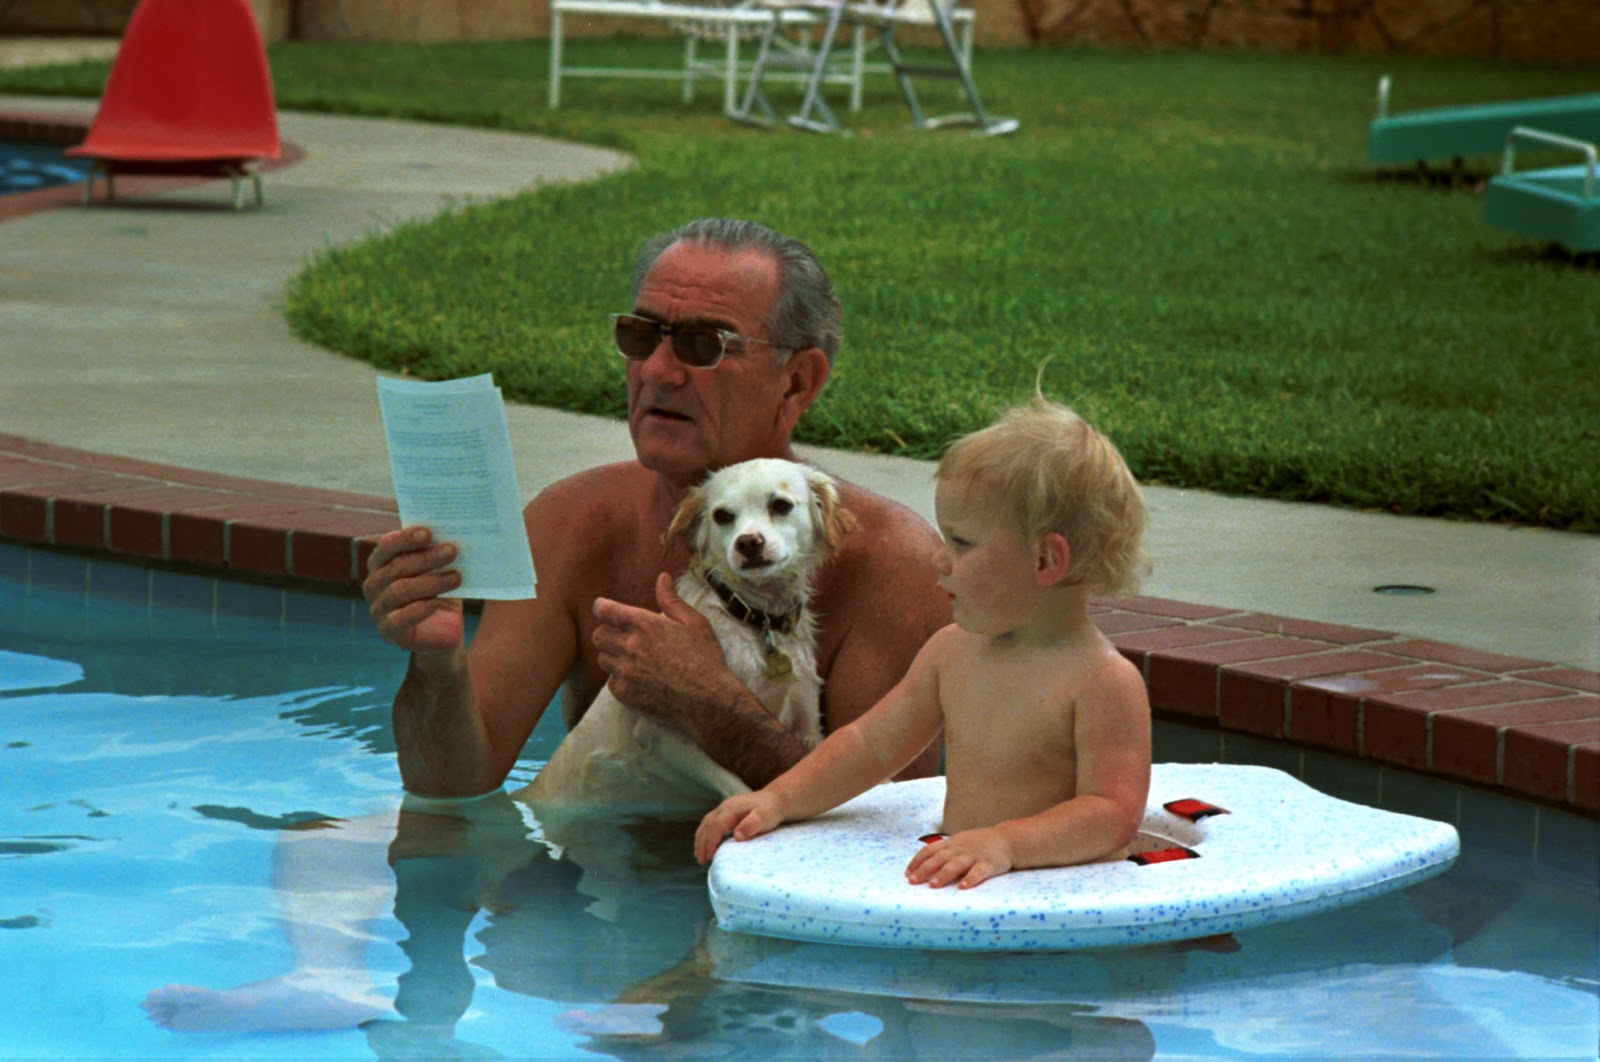 President Johnson with grandson Patrick and dog Yuki on his 59th birthday. LBJ Library photo by Yoichi Okamoto, Aug. 27, 1968